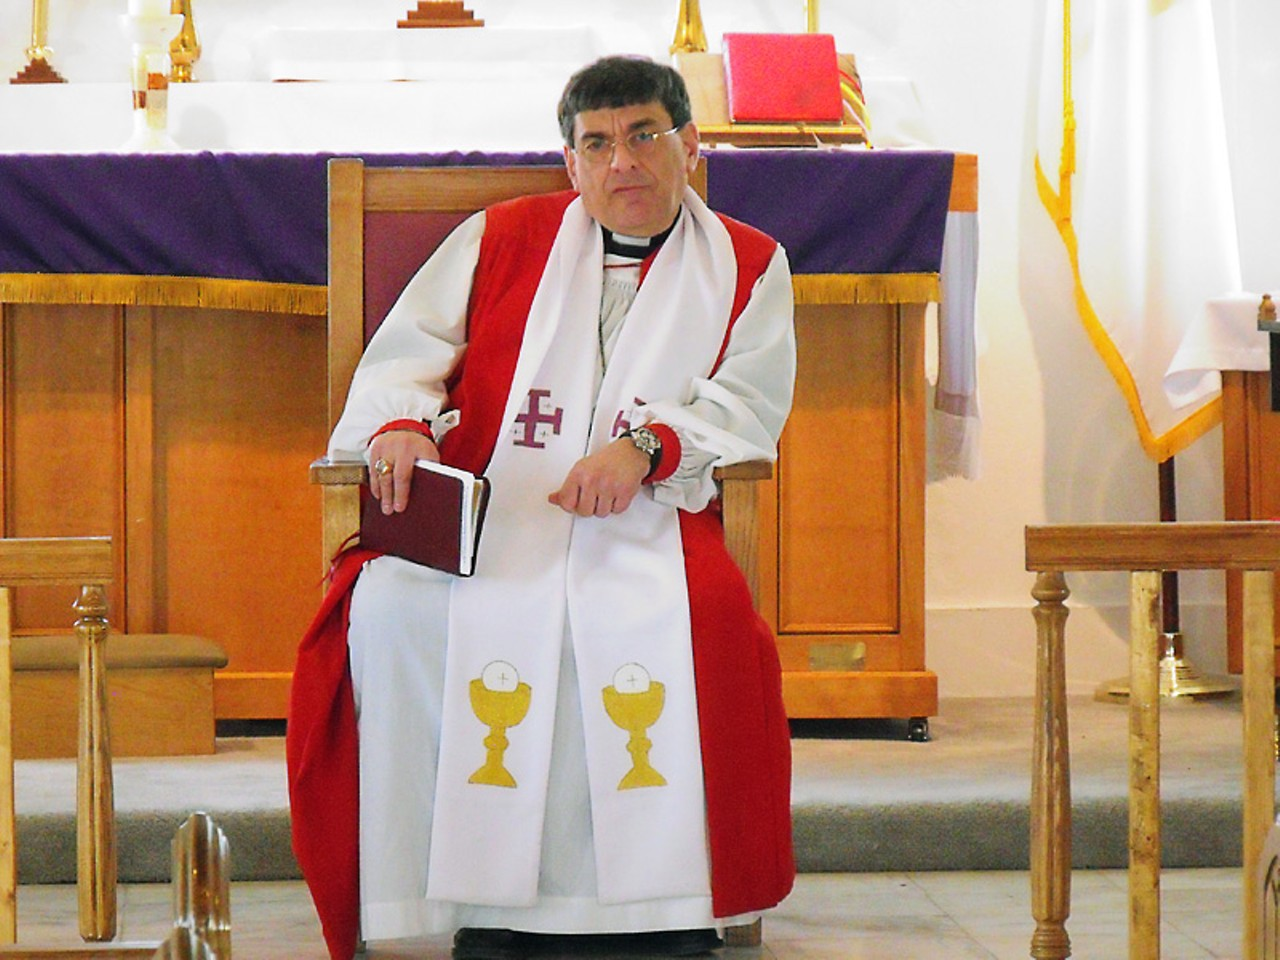 white collar crime anglican bishop martin sigillito is accused of despite the taint of scandal martin sigillito still administers to the american anglican faithful on sundays in richmond heights